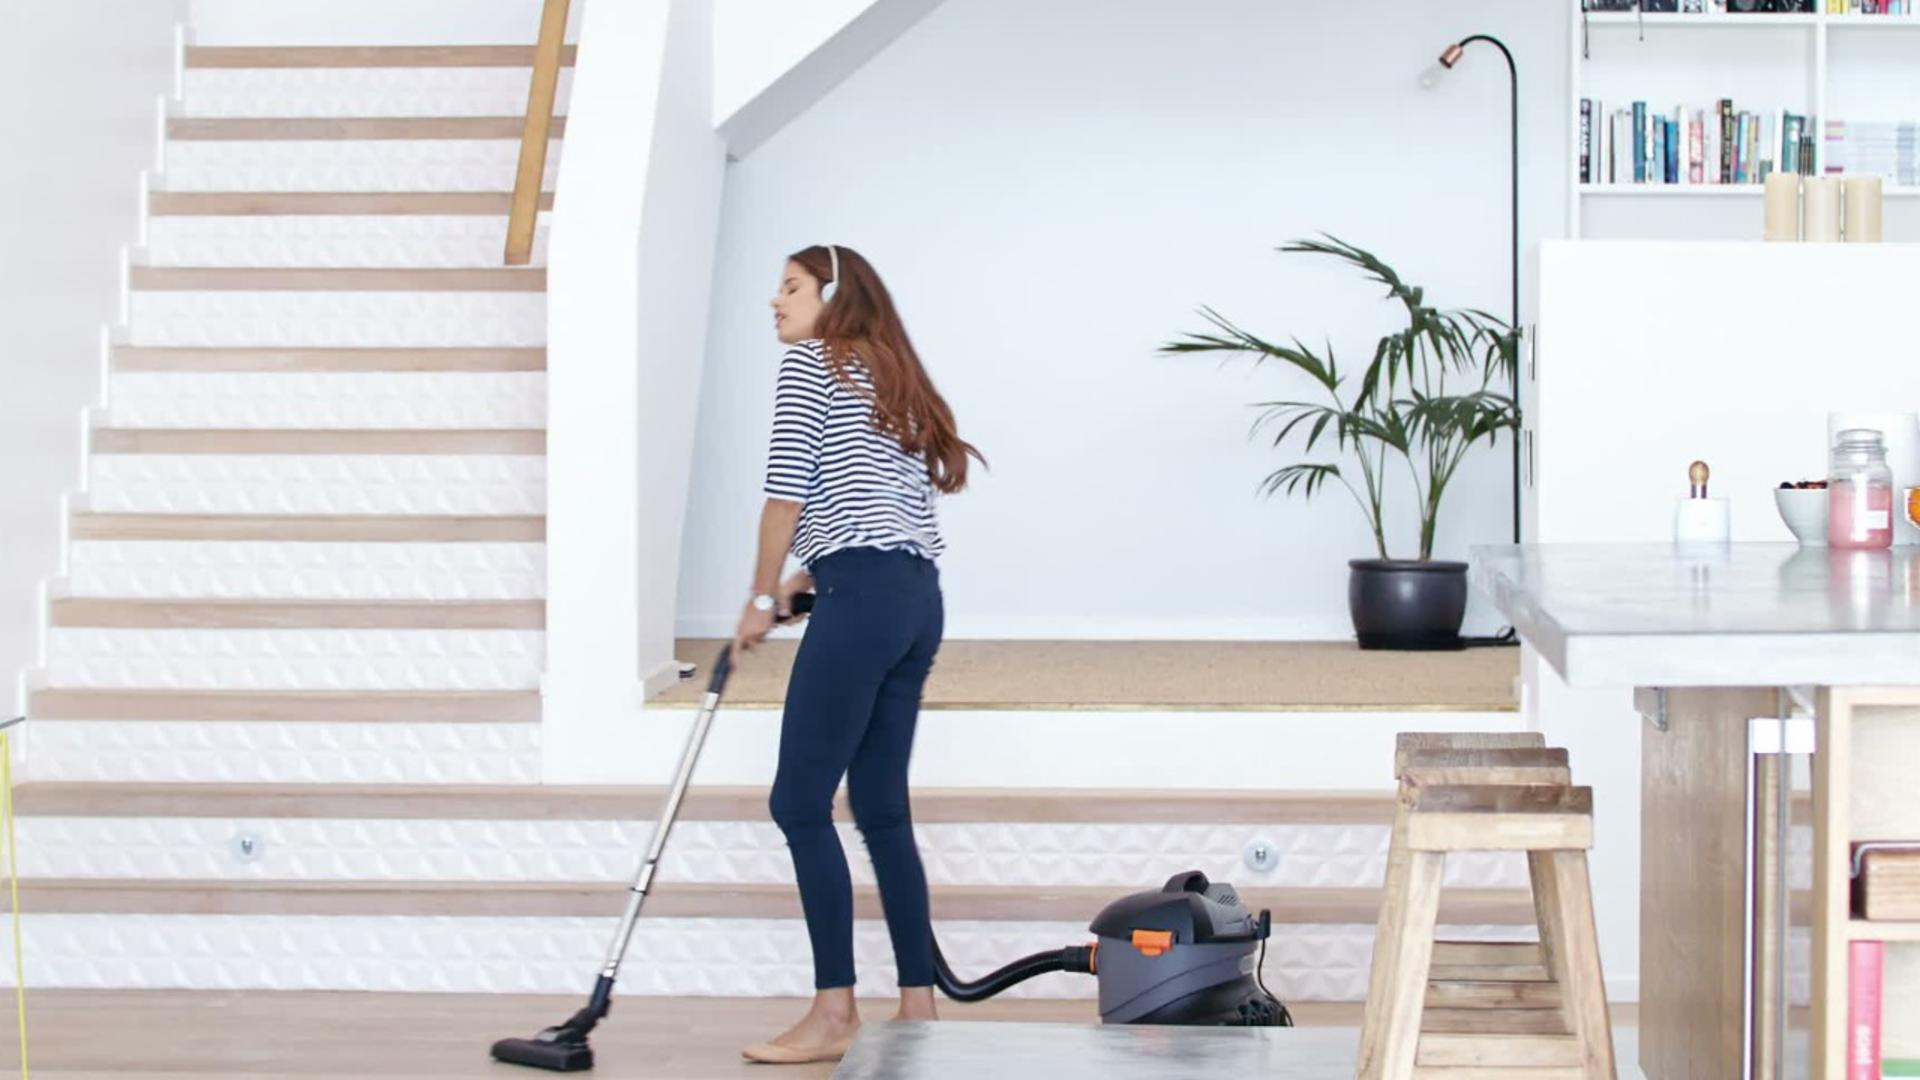 10 insane gadgets you didn't know you needed for spring cleaning